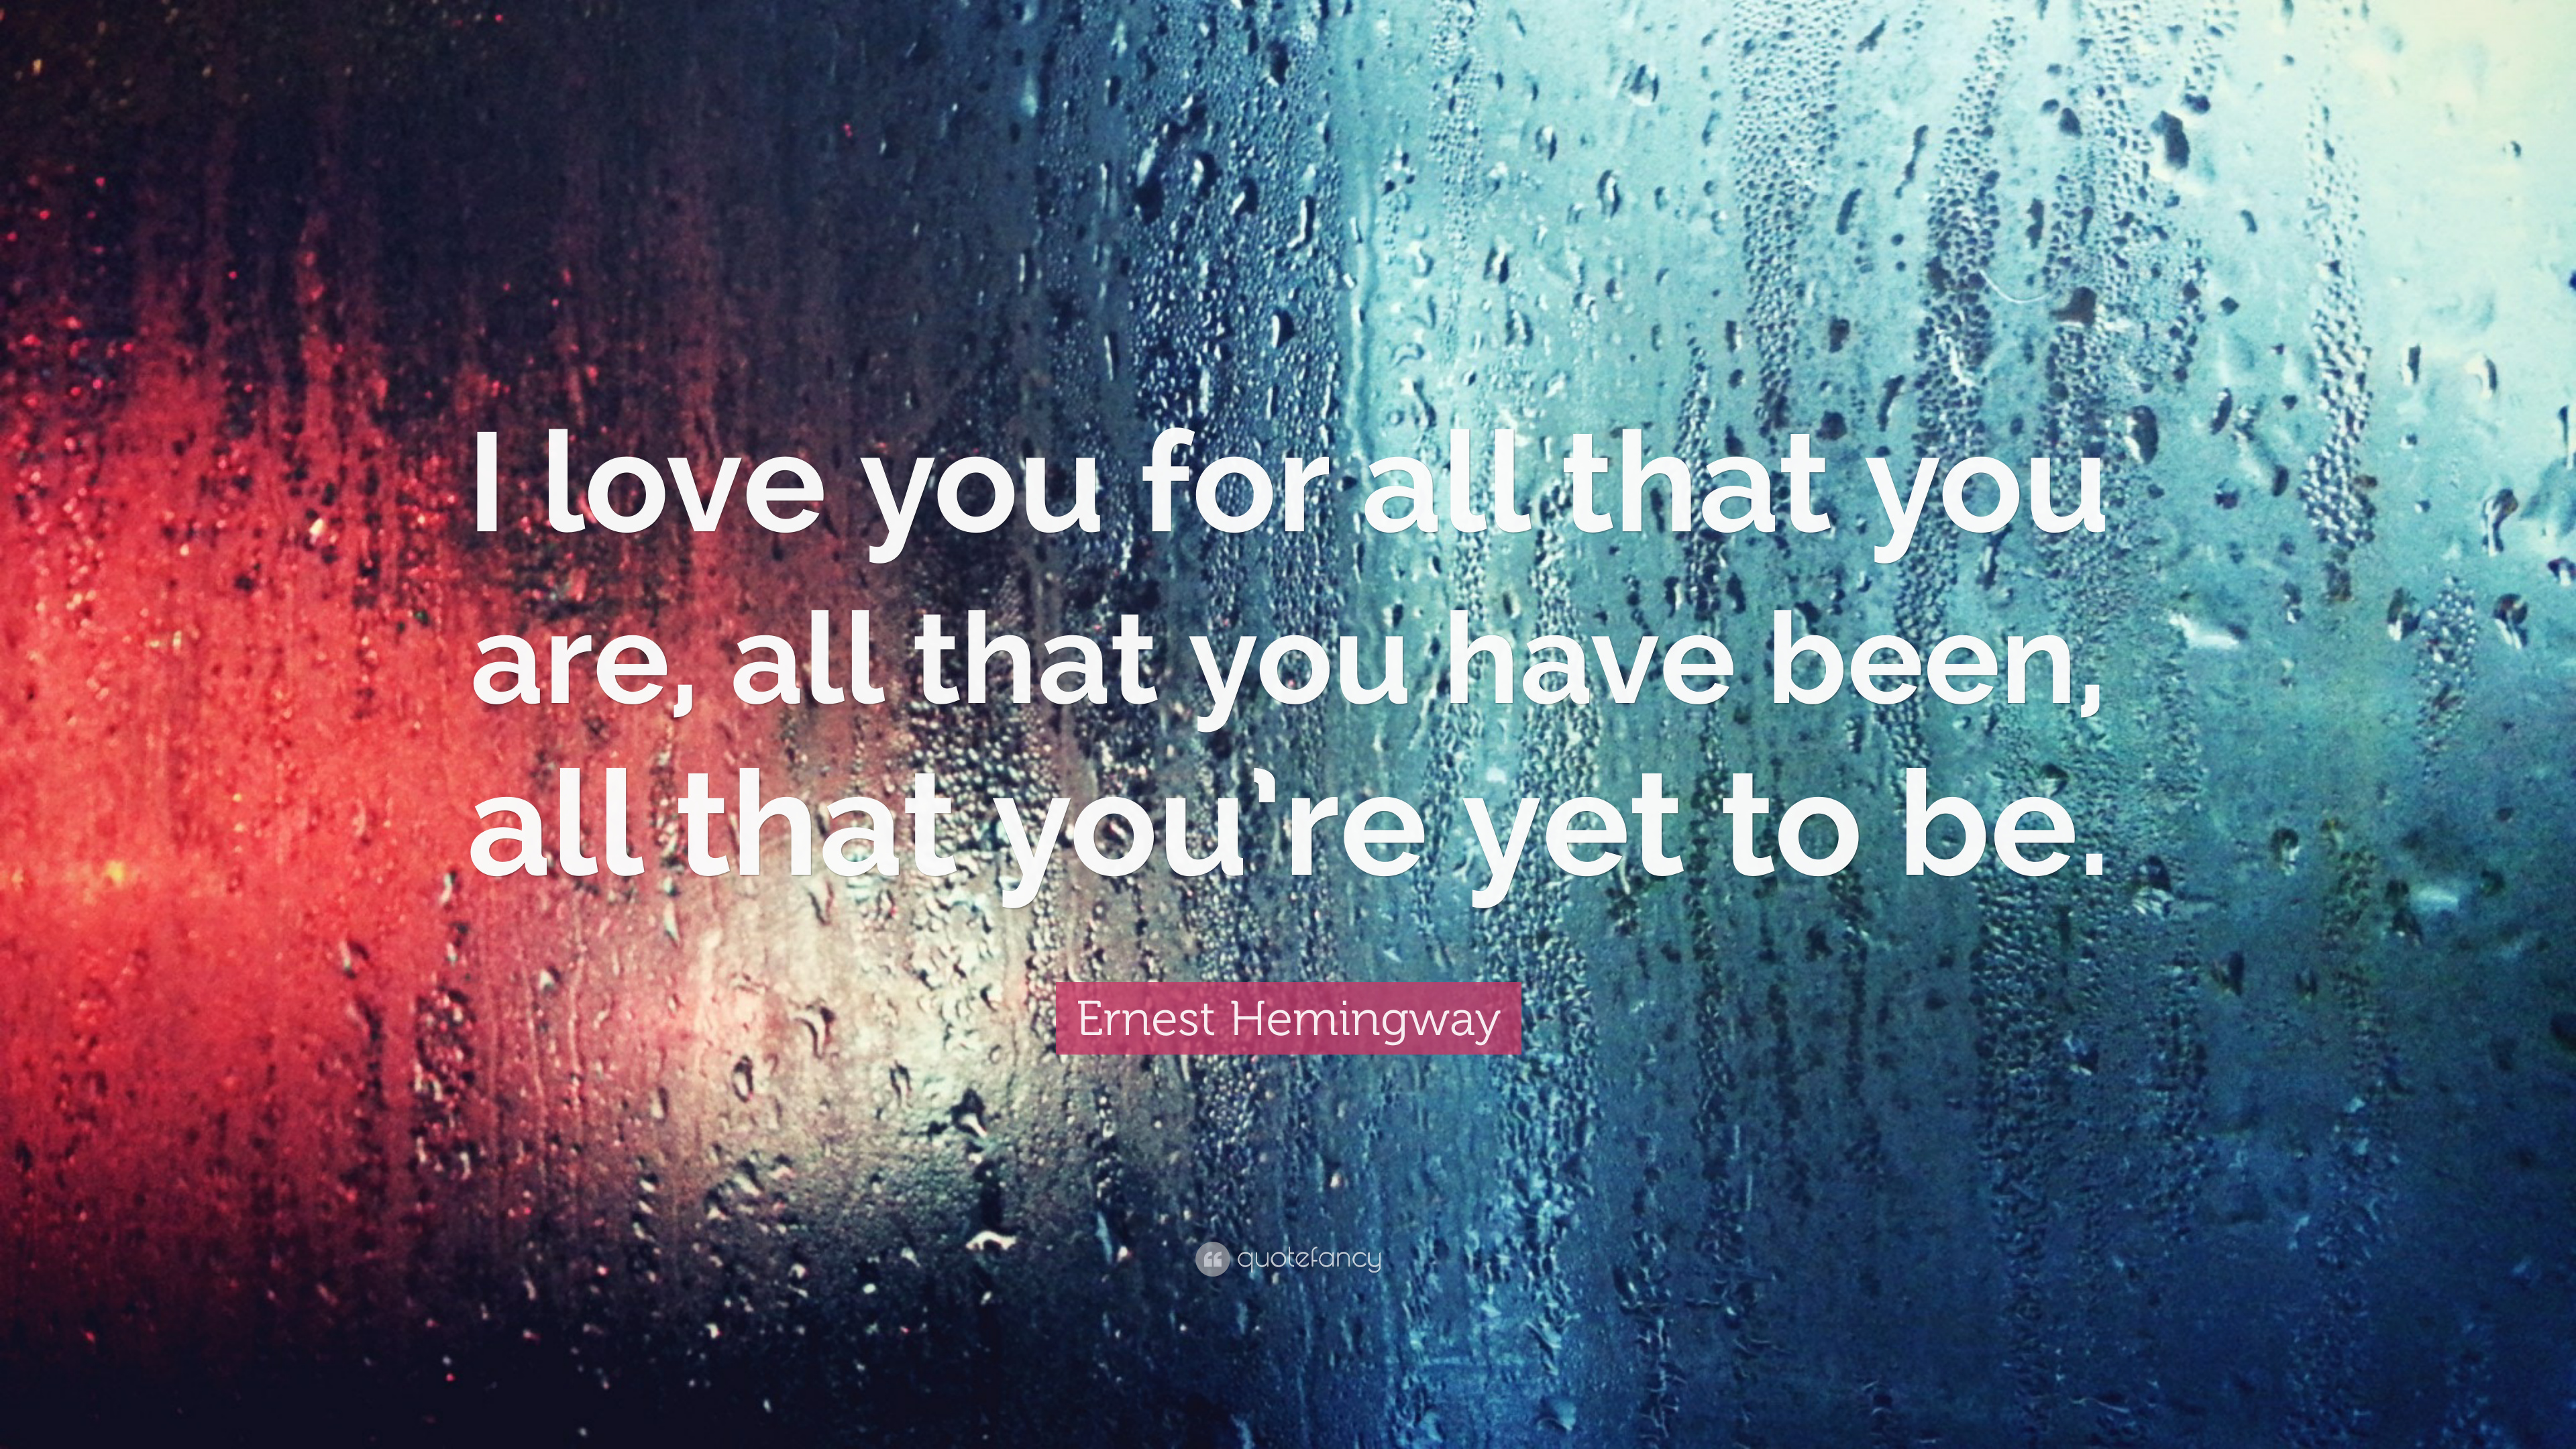 Ernest Hemingway Quote: U201cI Love You For All That You Are, All That